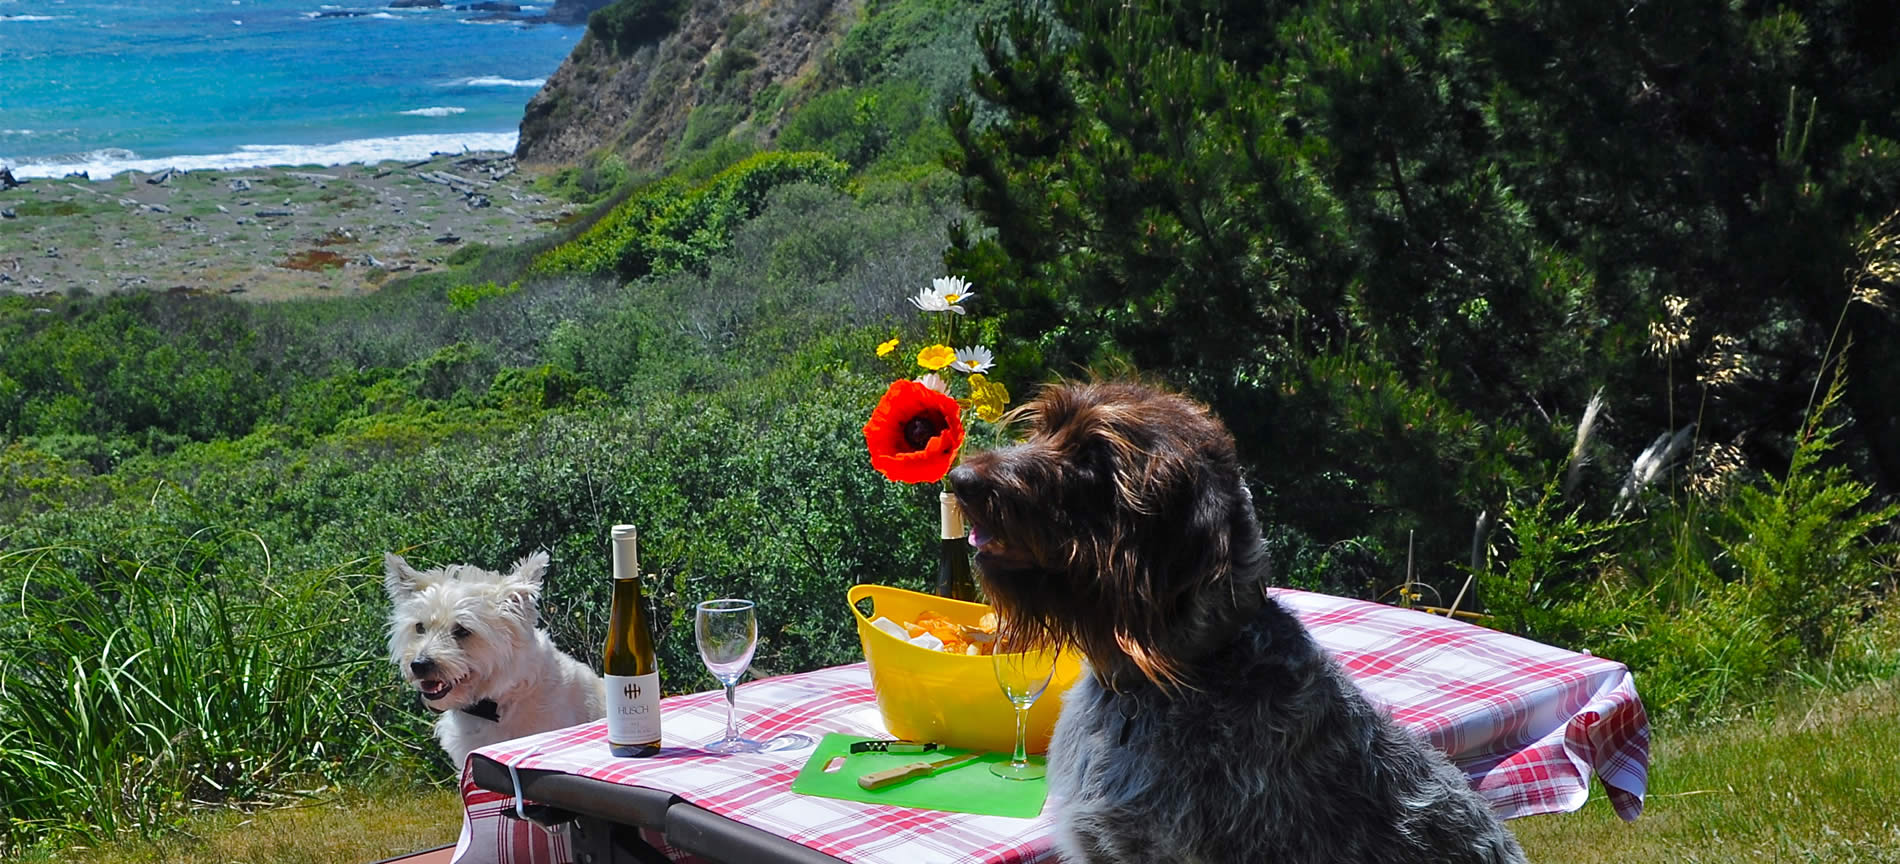 mendocino-coast-pet-friendly lodging